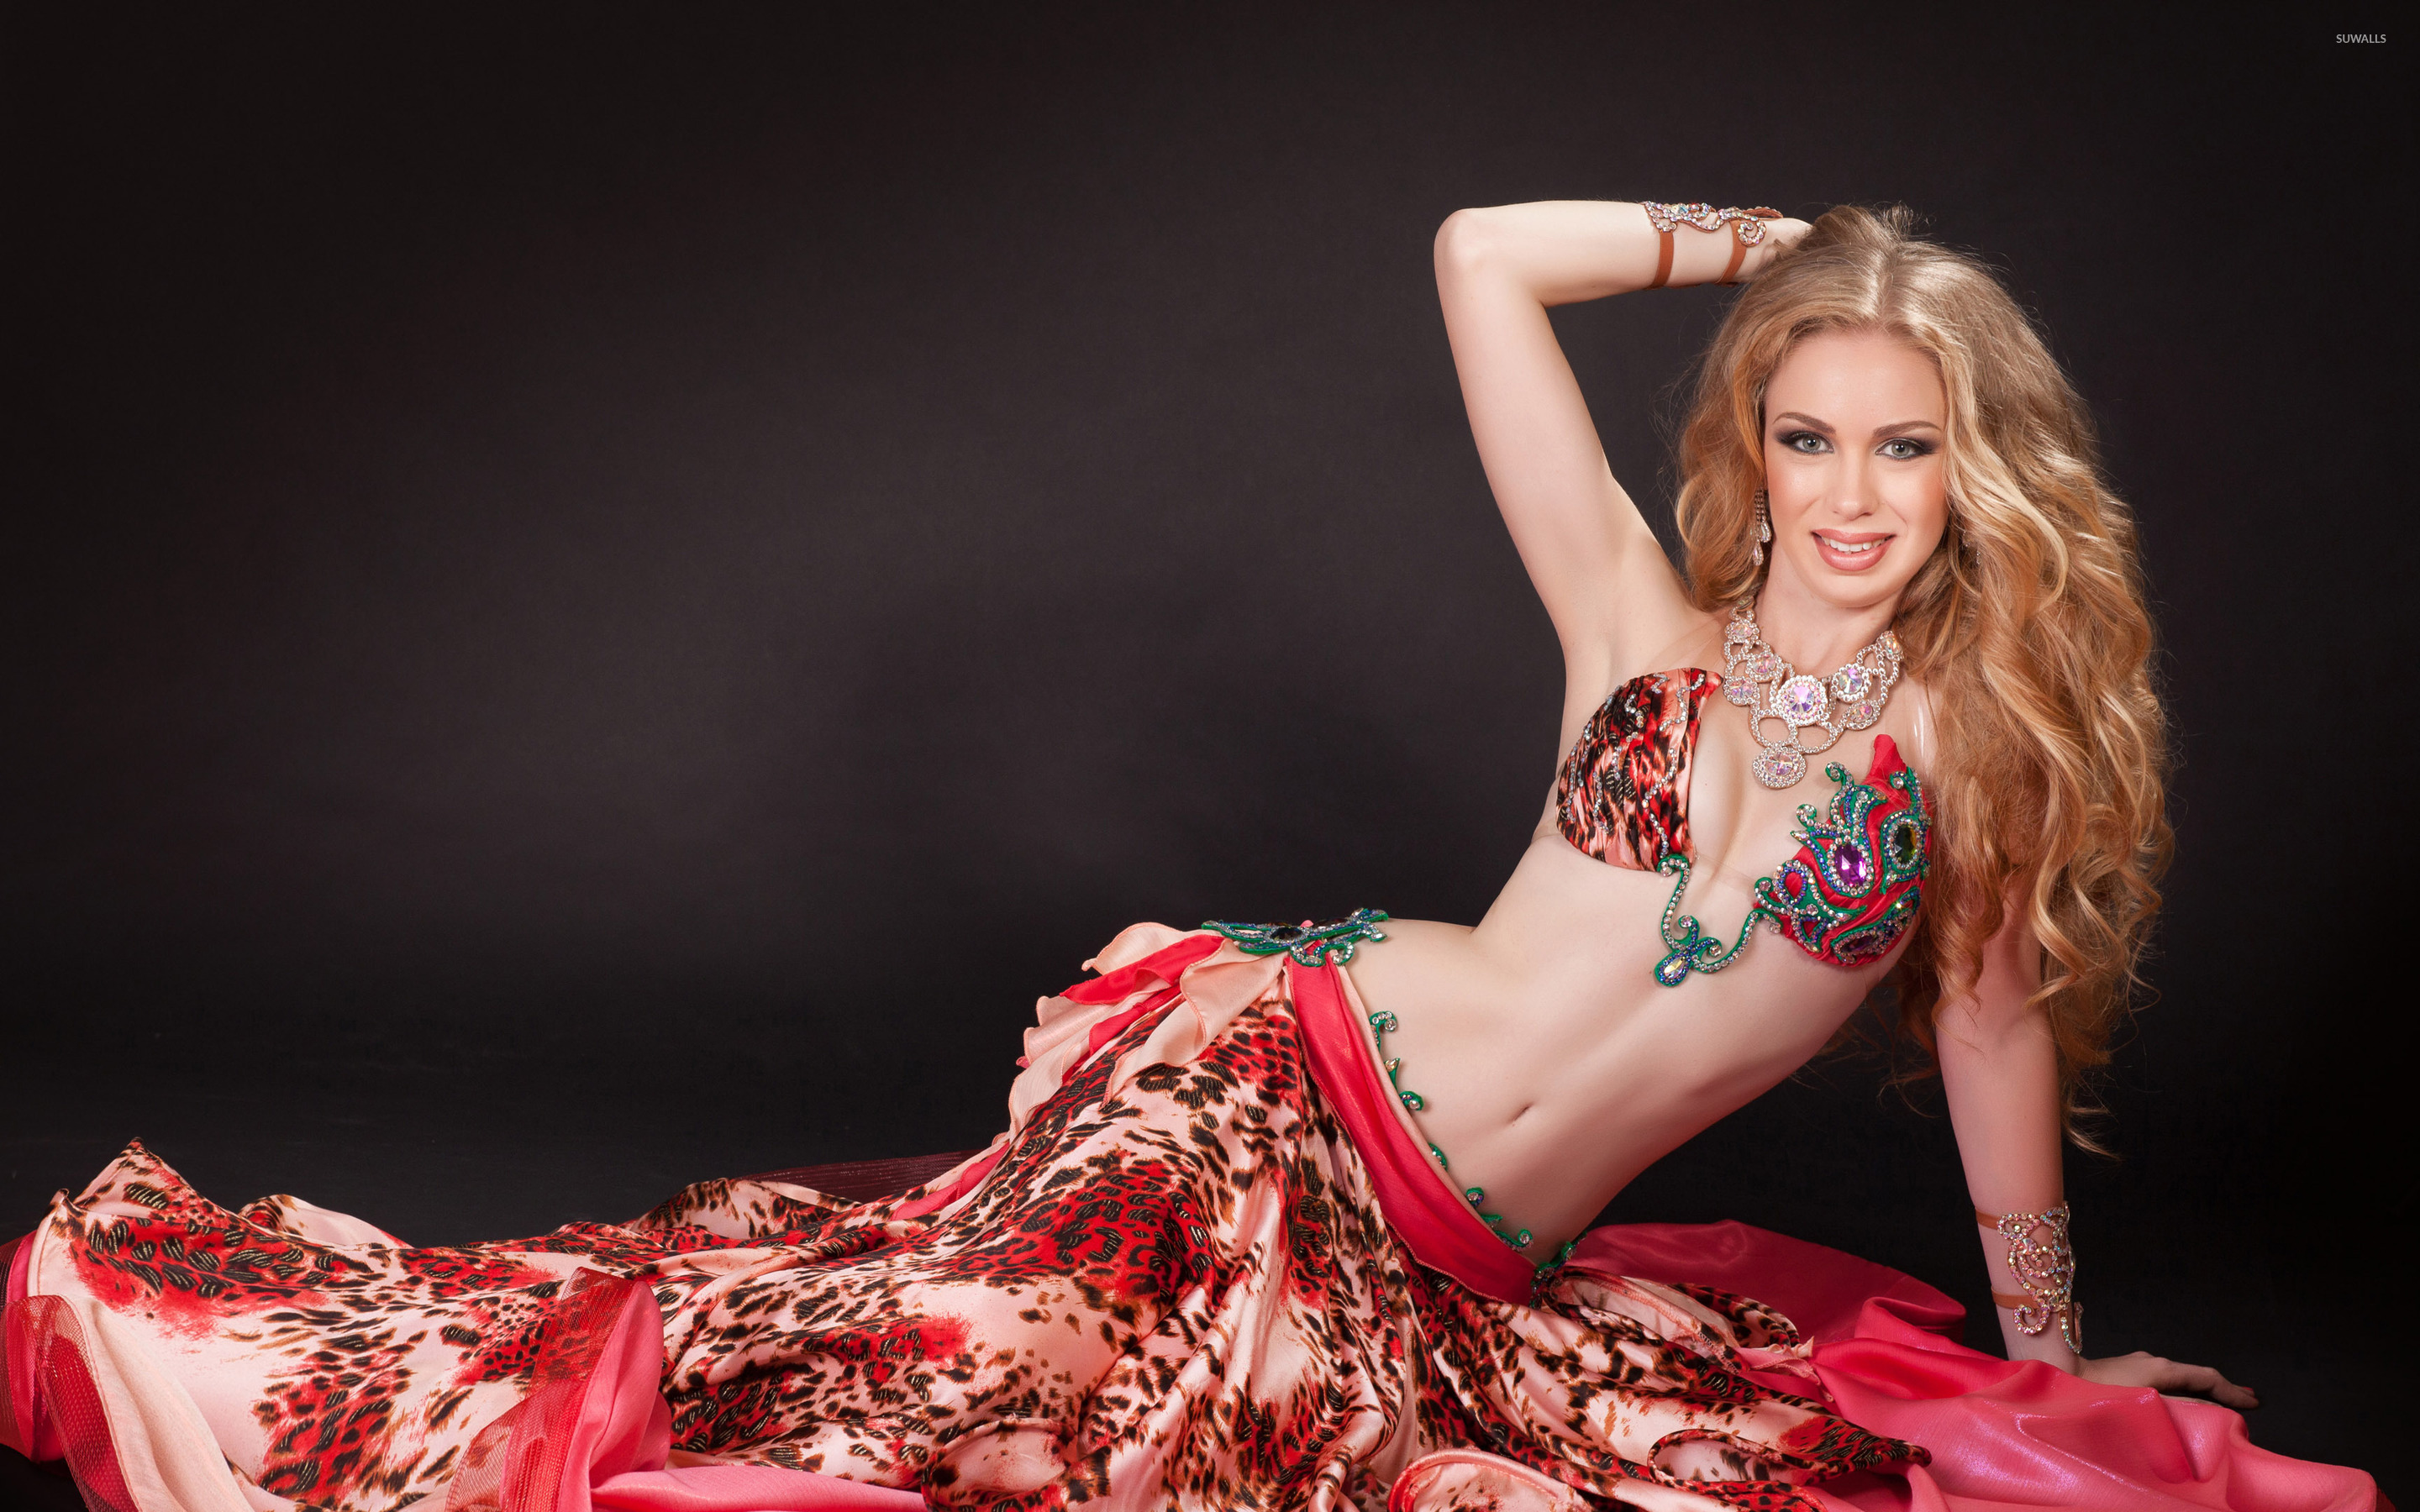 Cute Asian Wallpaper Blonde Belly Dancer Wallpaper Girl Wallpapers 39729